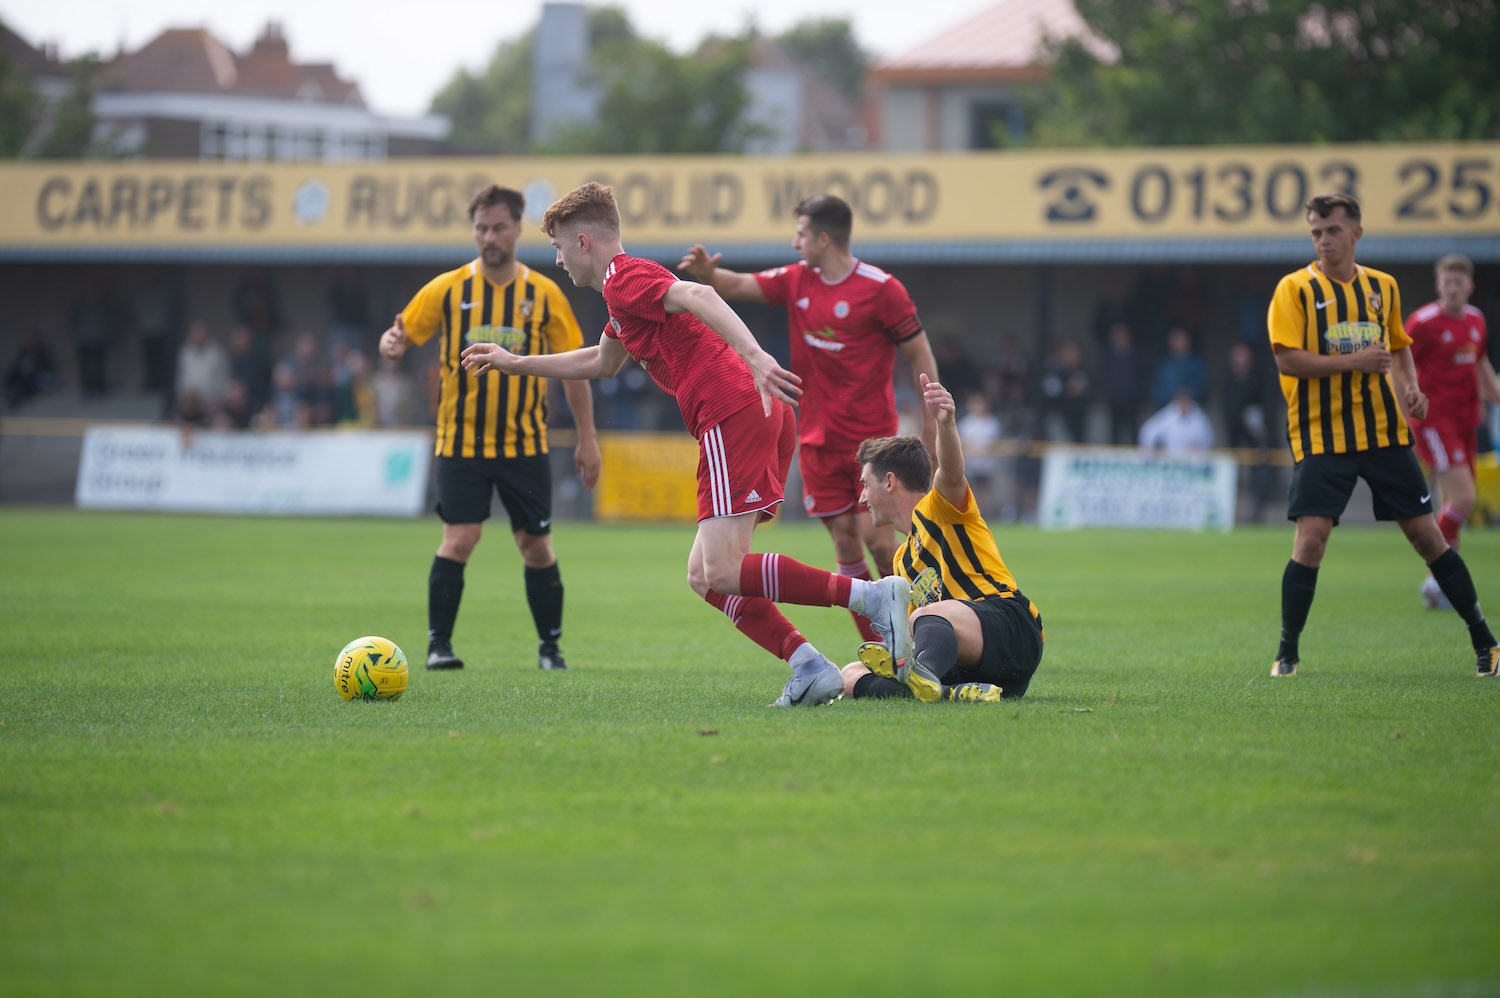 Read the full article - Invicta Breeze Past Reds